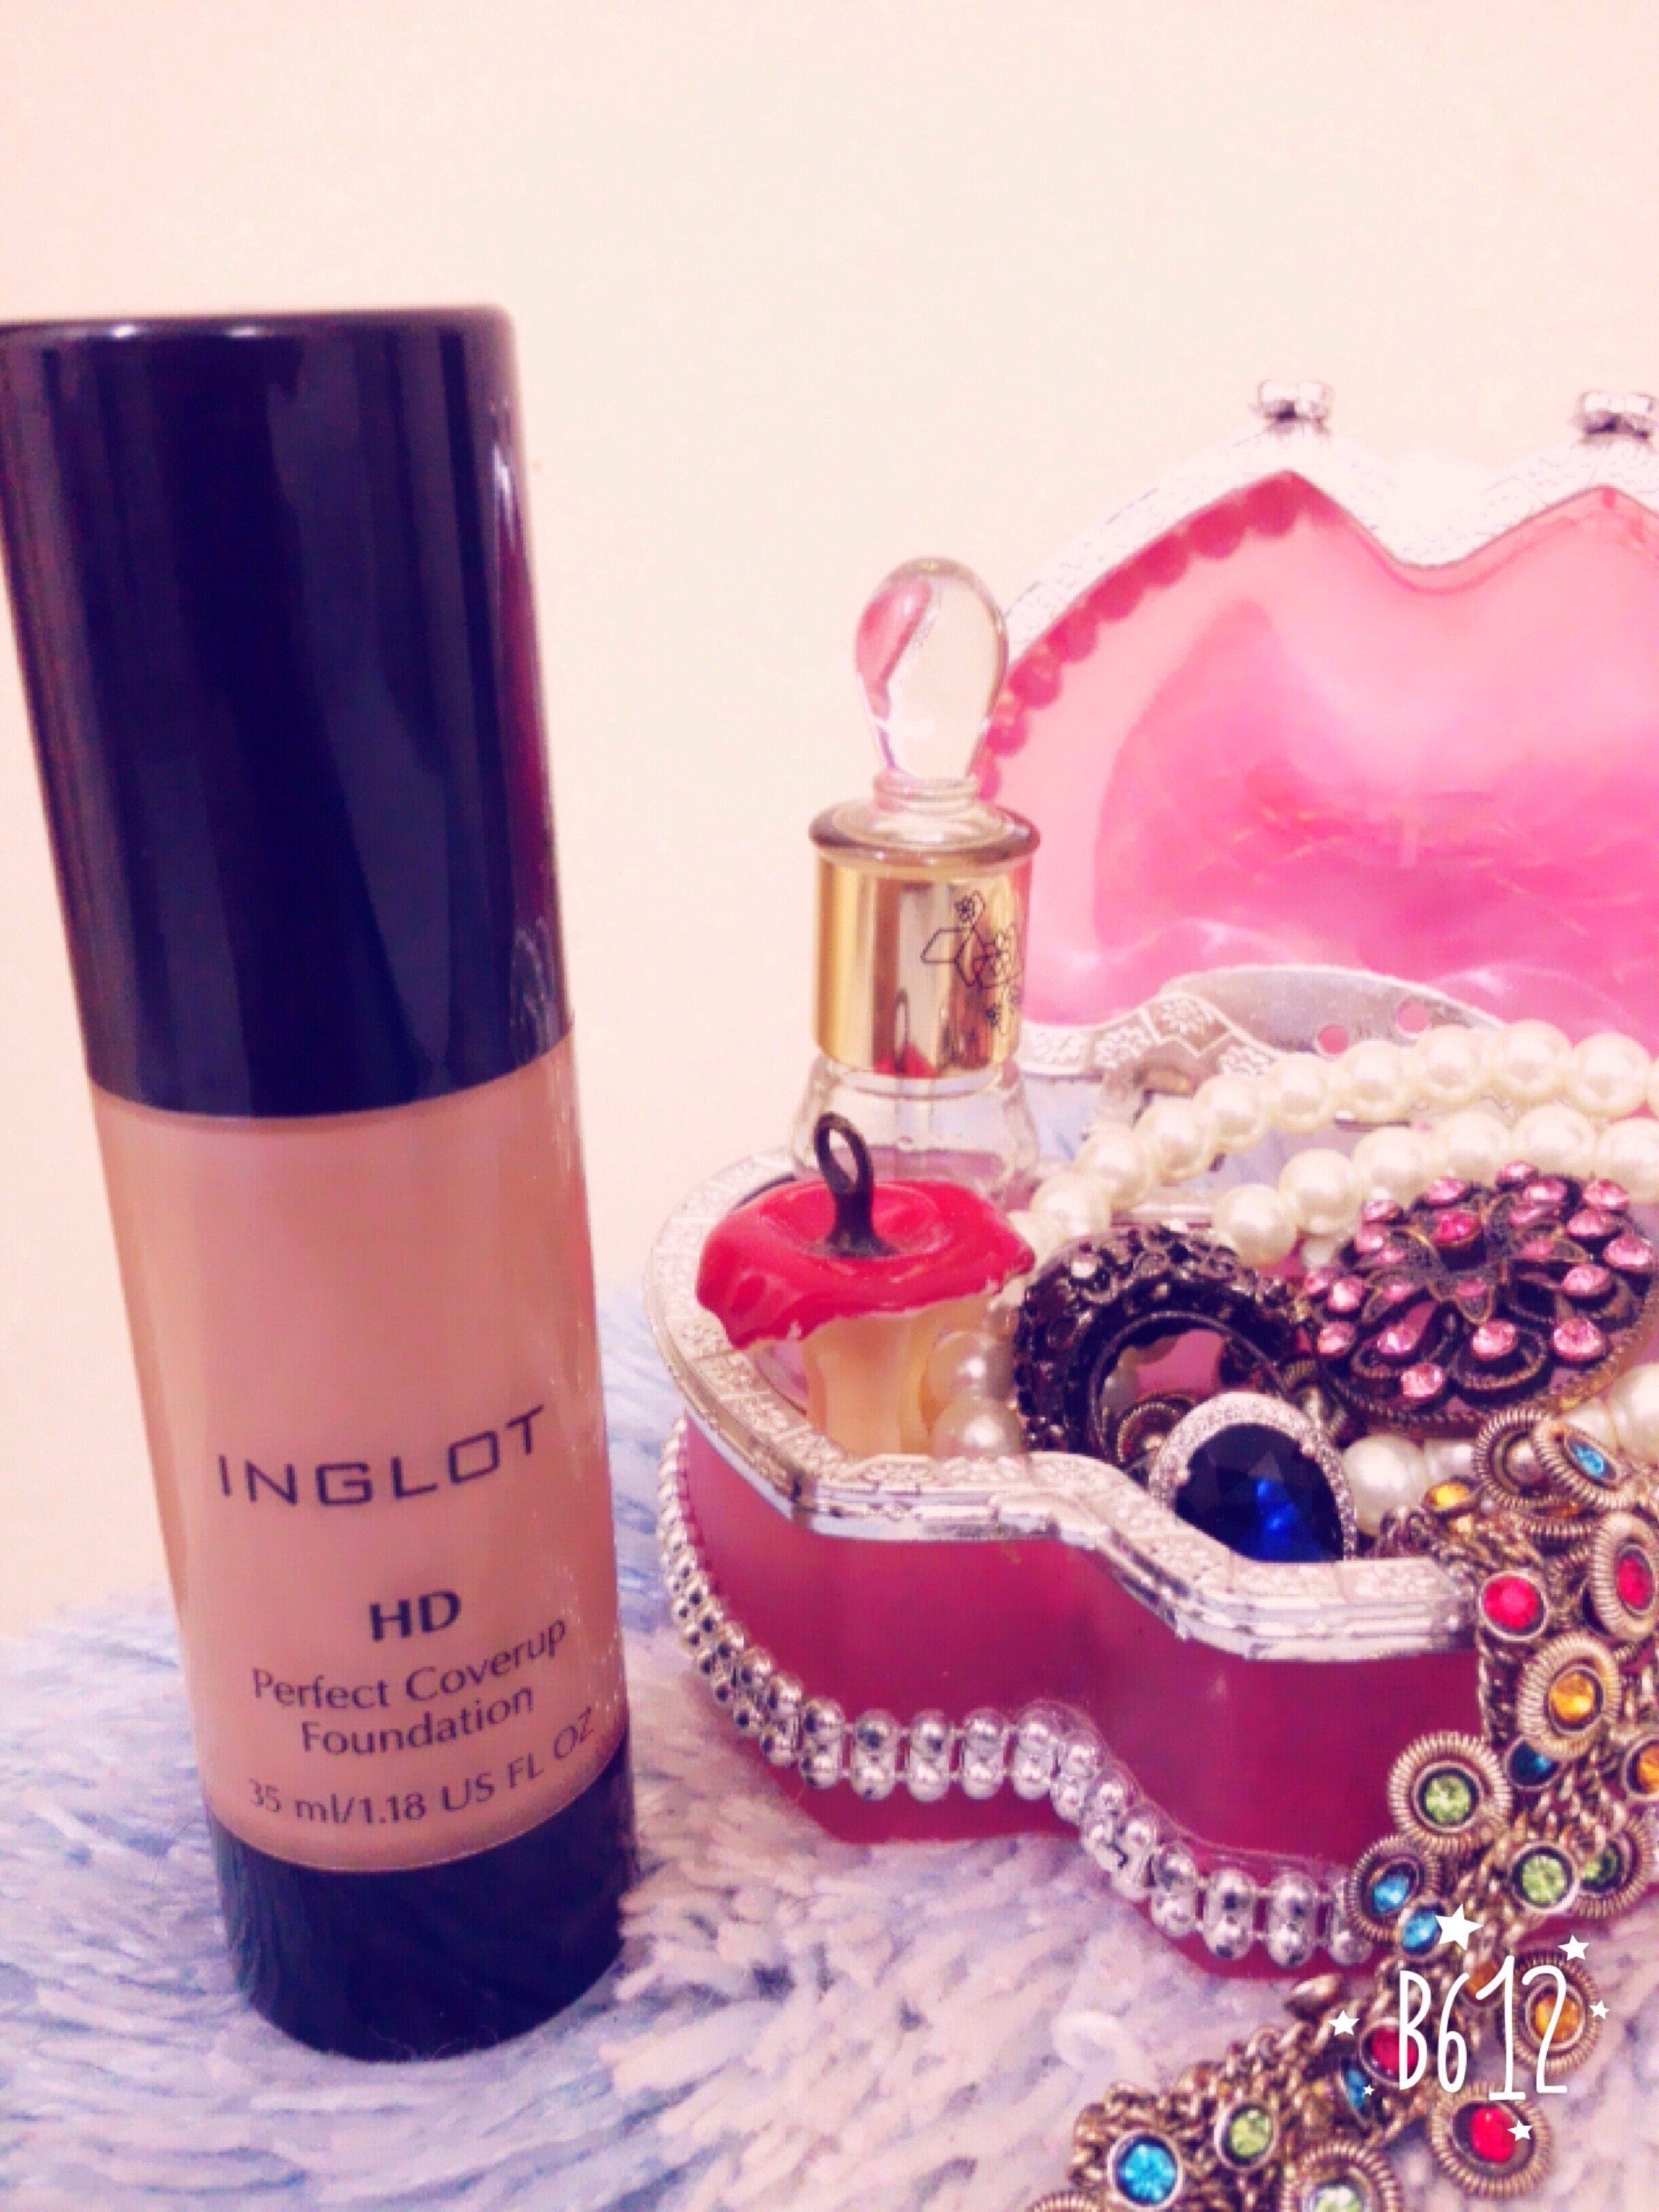 inglot hd foundation review makeupalley